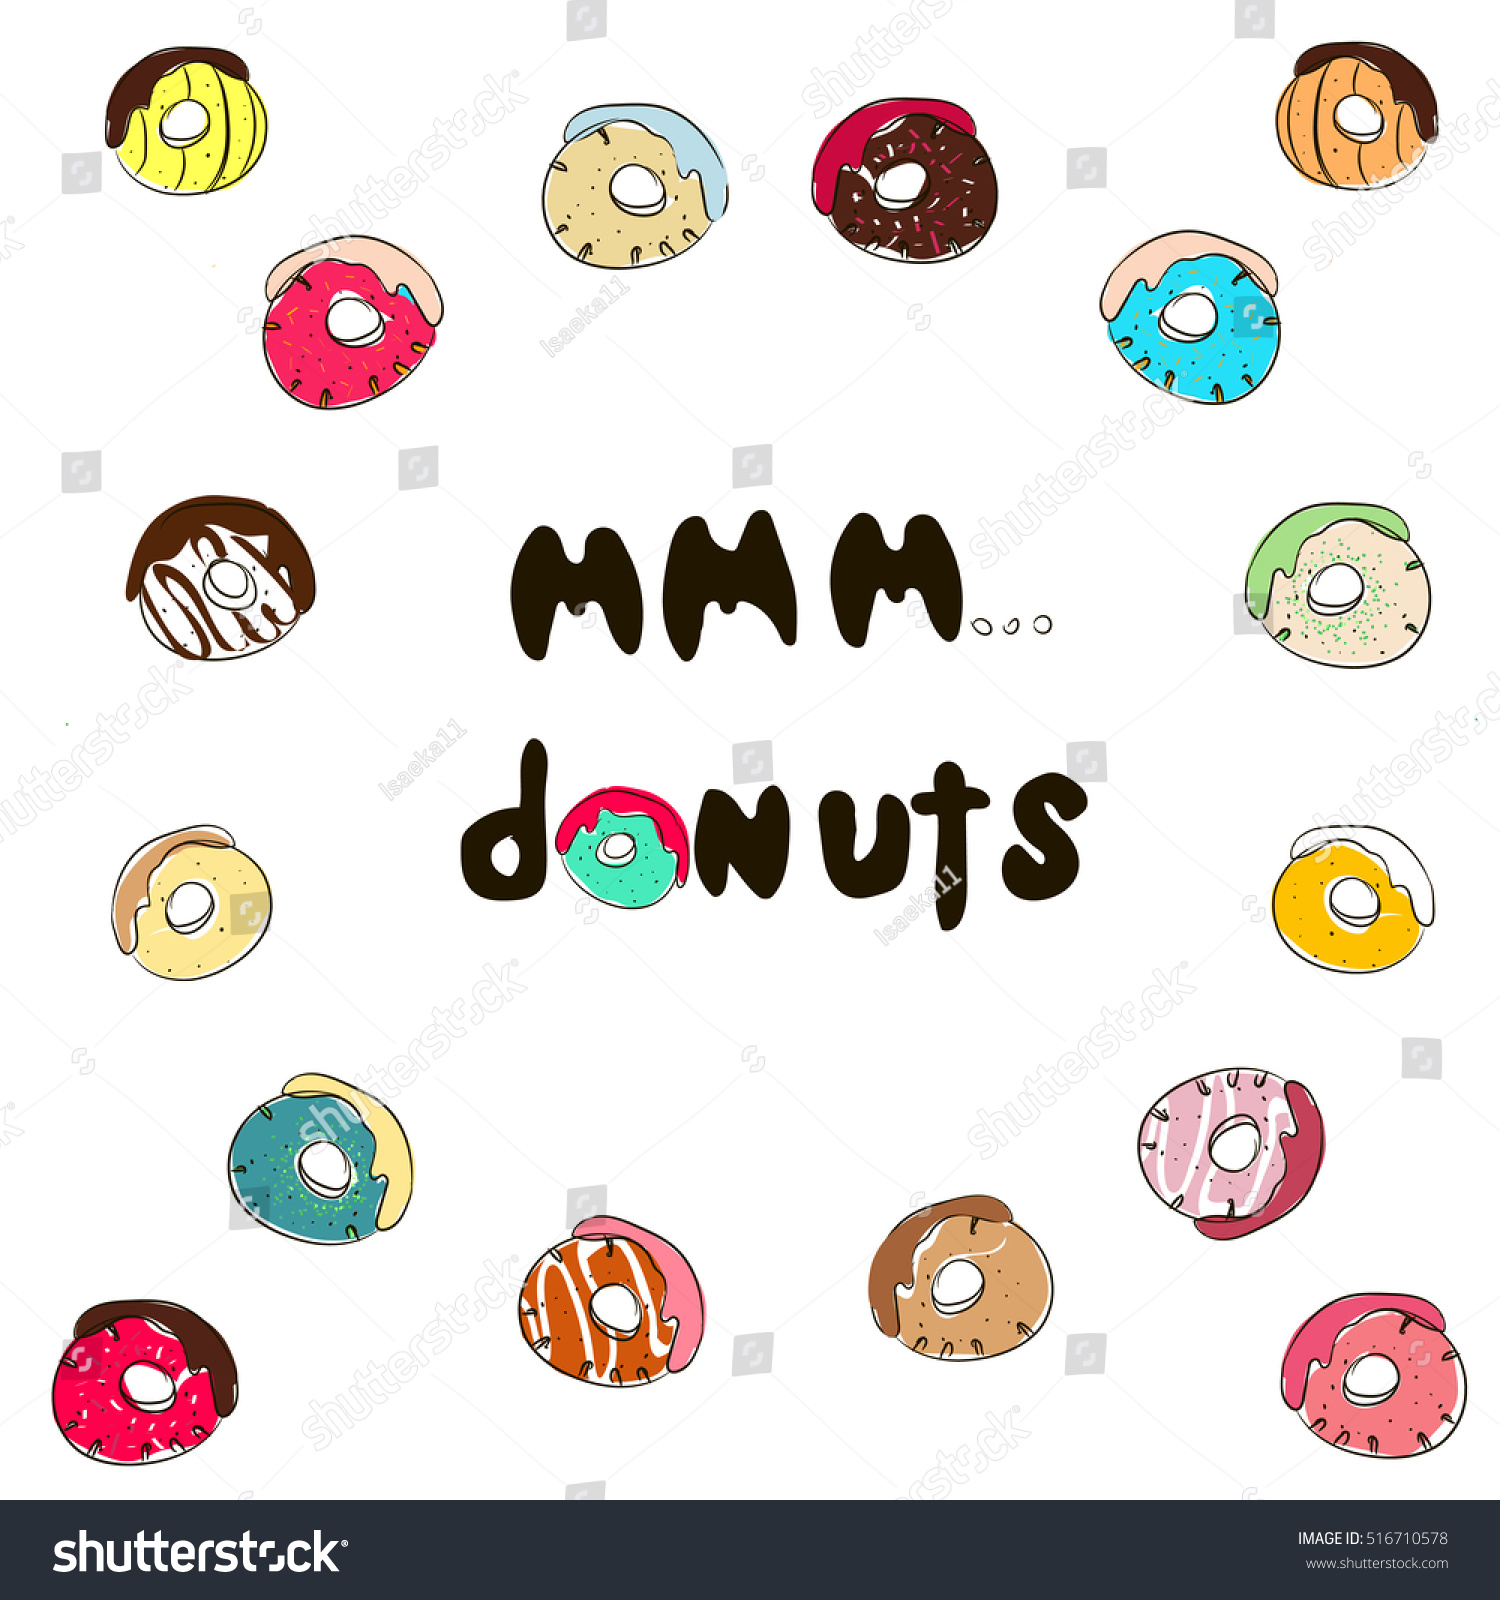 Mmm Stock Quote Mmm Donuts Inscription Stock Quotes Donuts Stock Vector 516710578